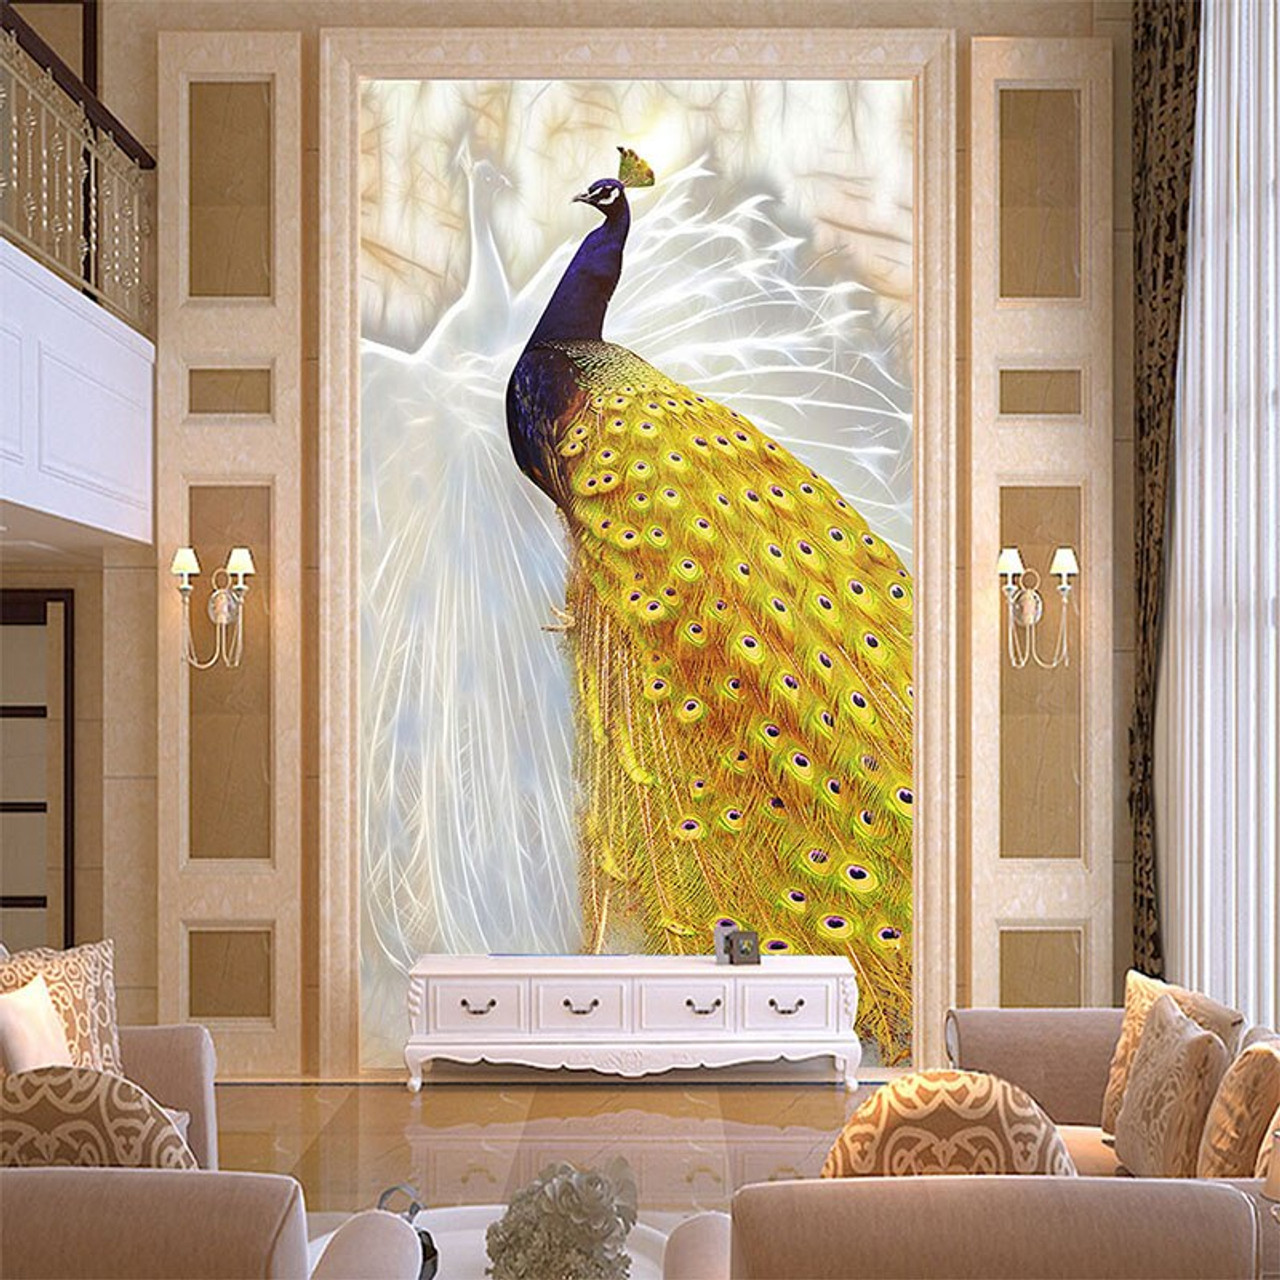 Custom Photo Wallpaper European Style Gold Peacock Mural Chinese Style Living Room Entrance Corridor Home Decor 3d Wall Painting Onshopdeals Com